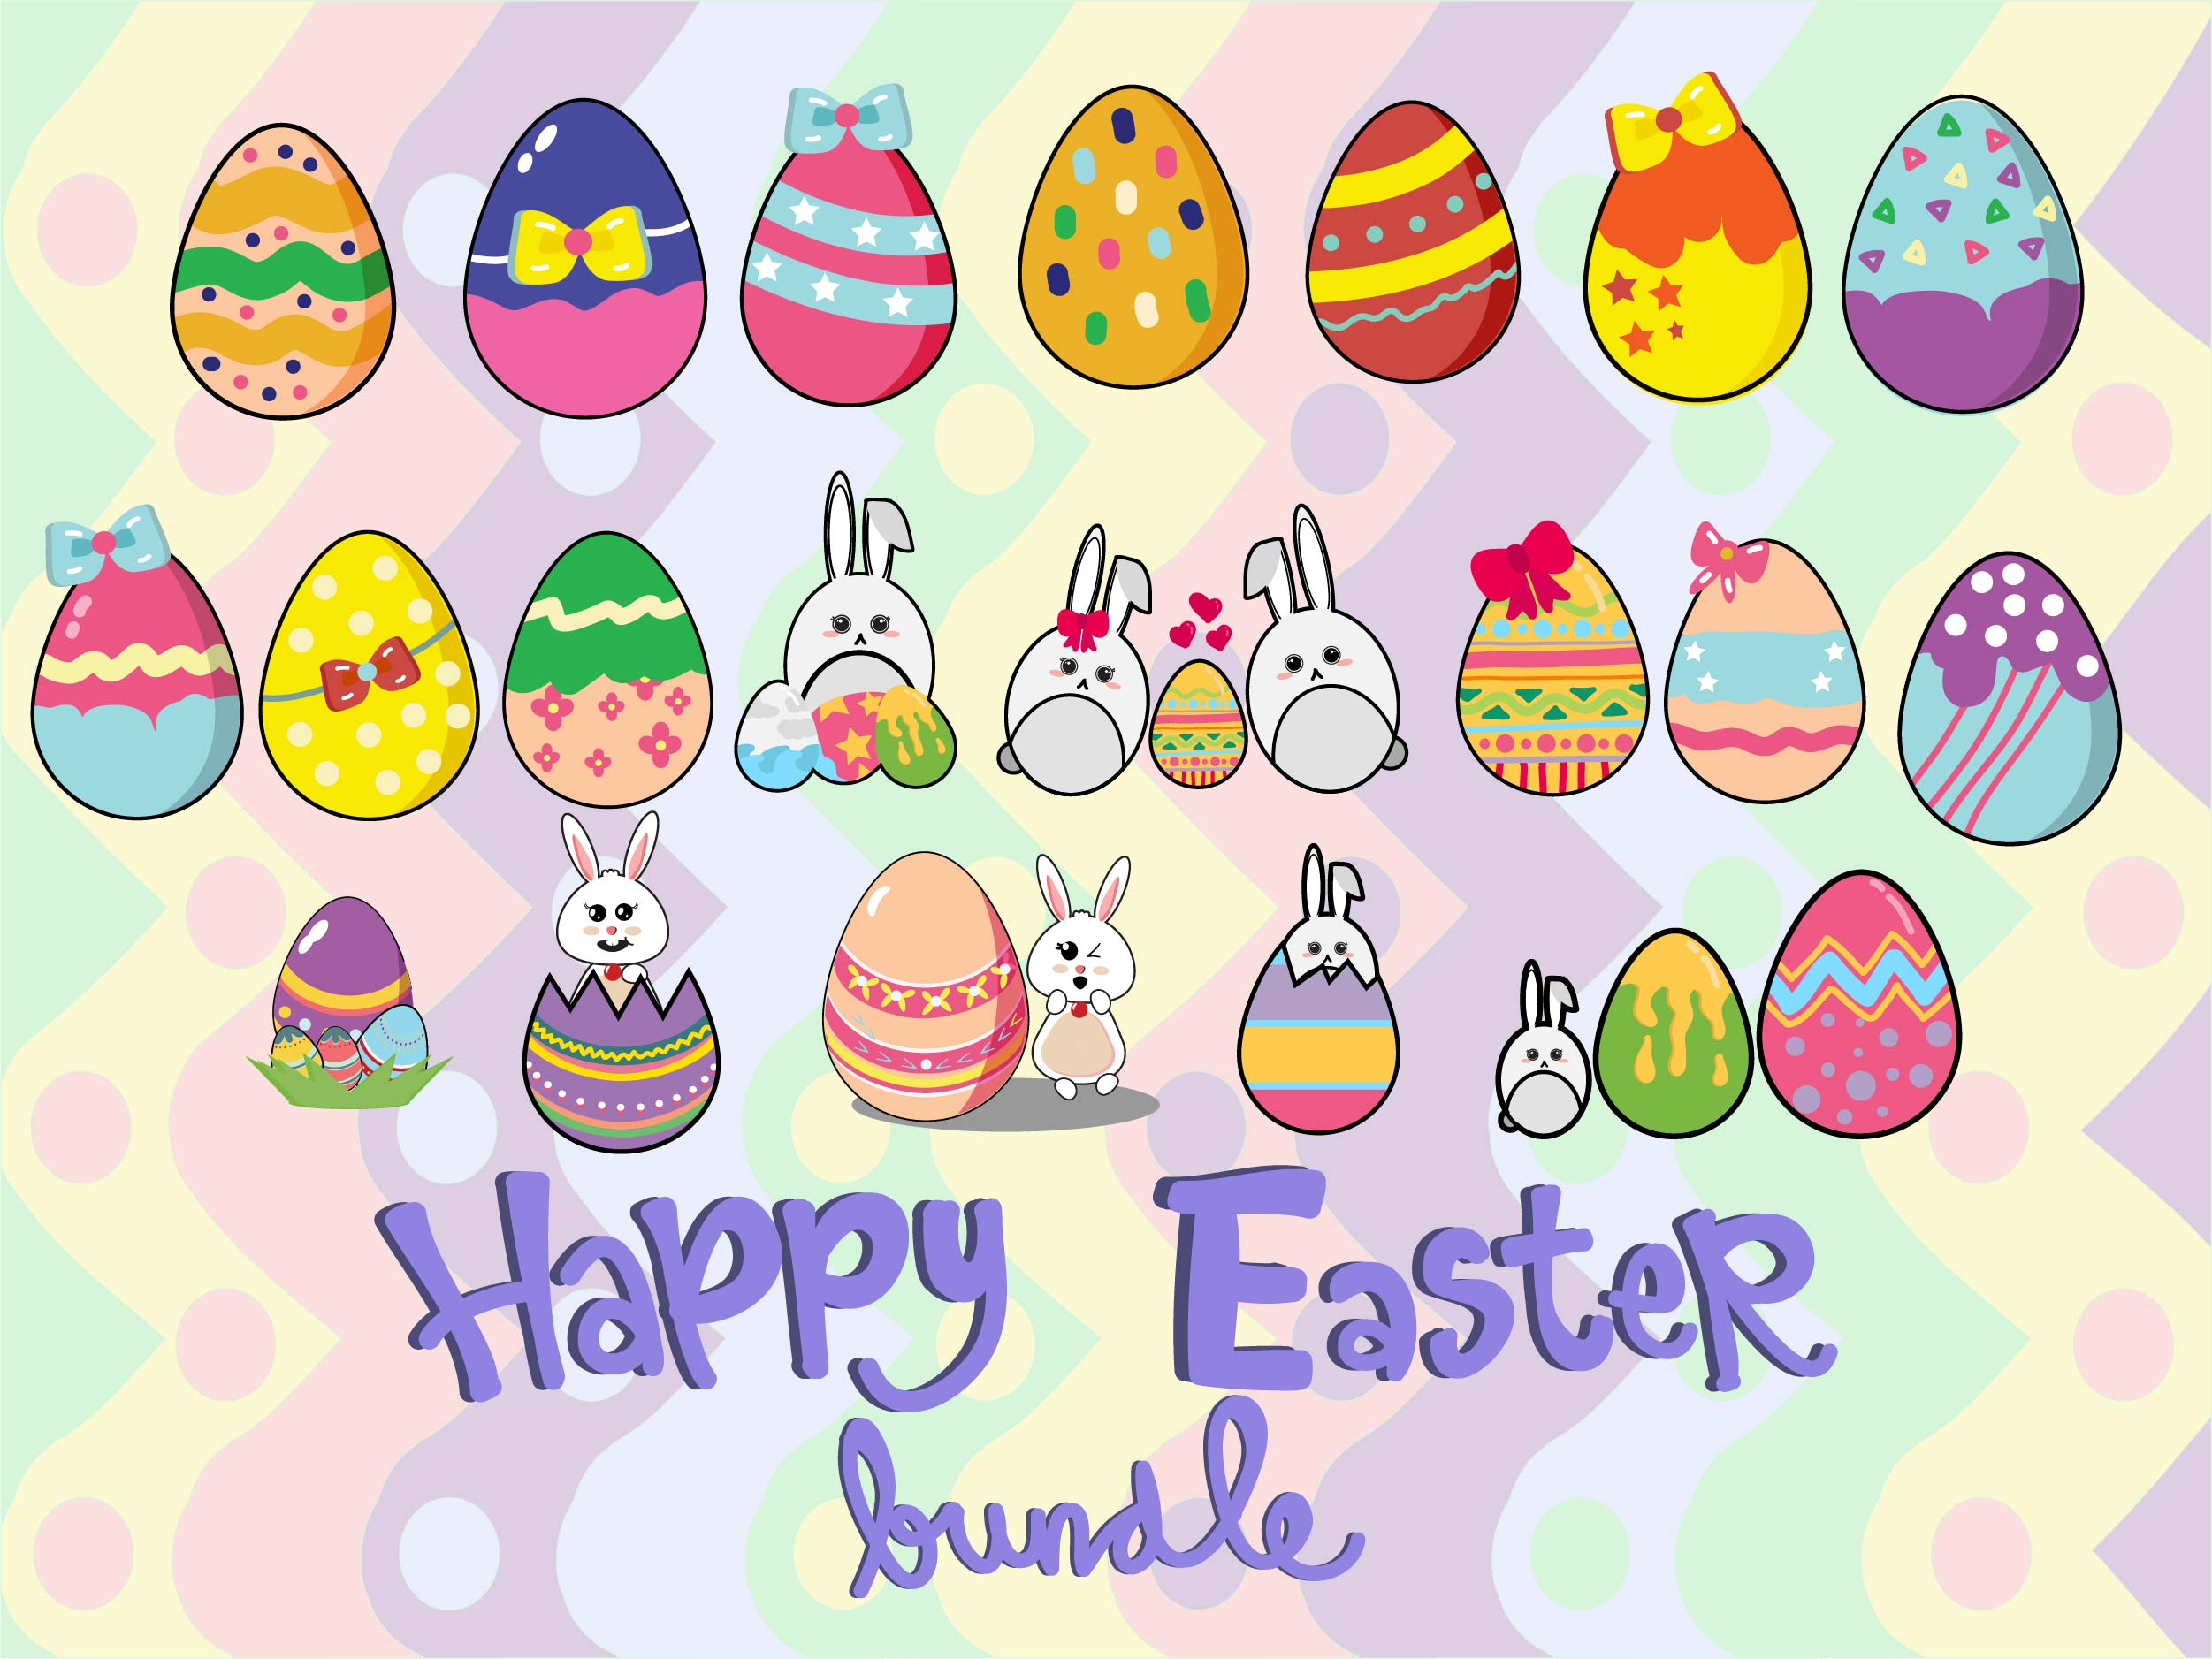 Download Free Easter Bunny Egg Bundle Graphic By Purplebubble Creative Fabrica for Cricut Explore, Silhouette and other cutting machines.